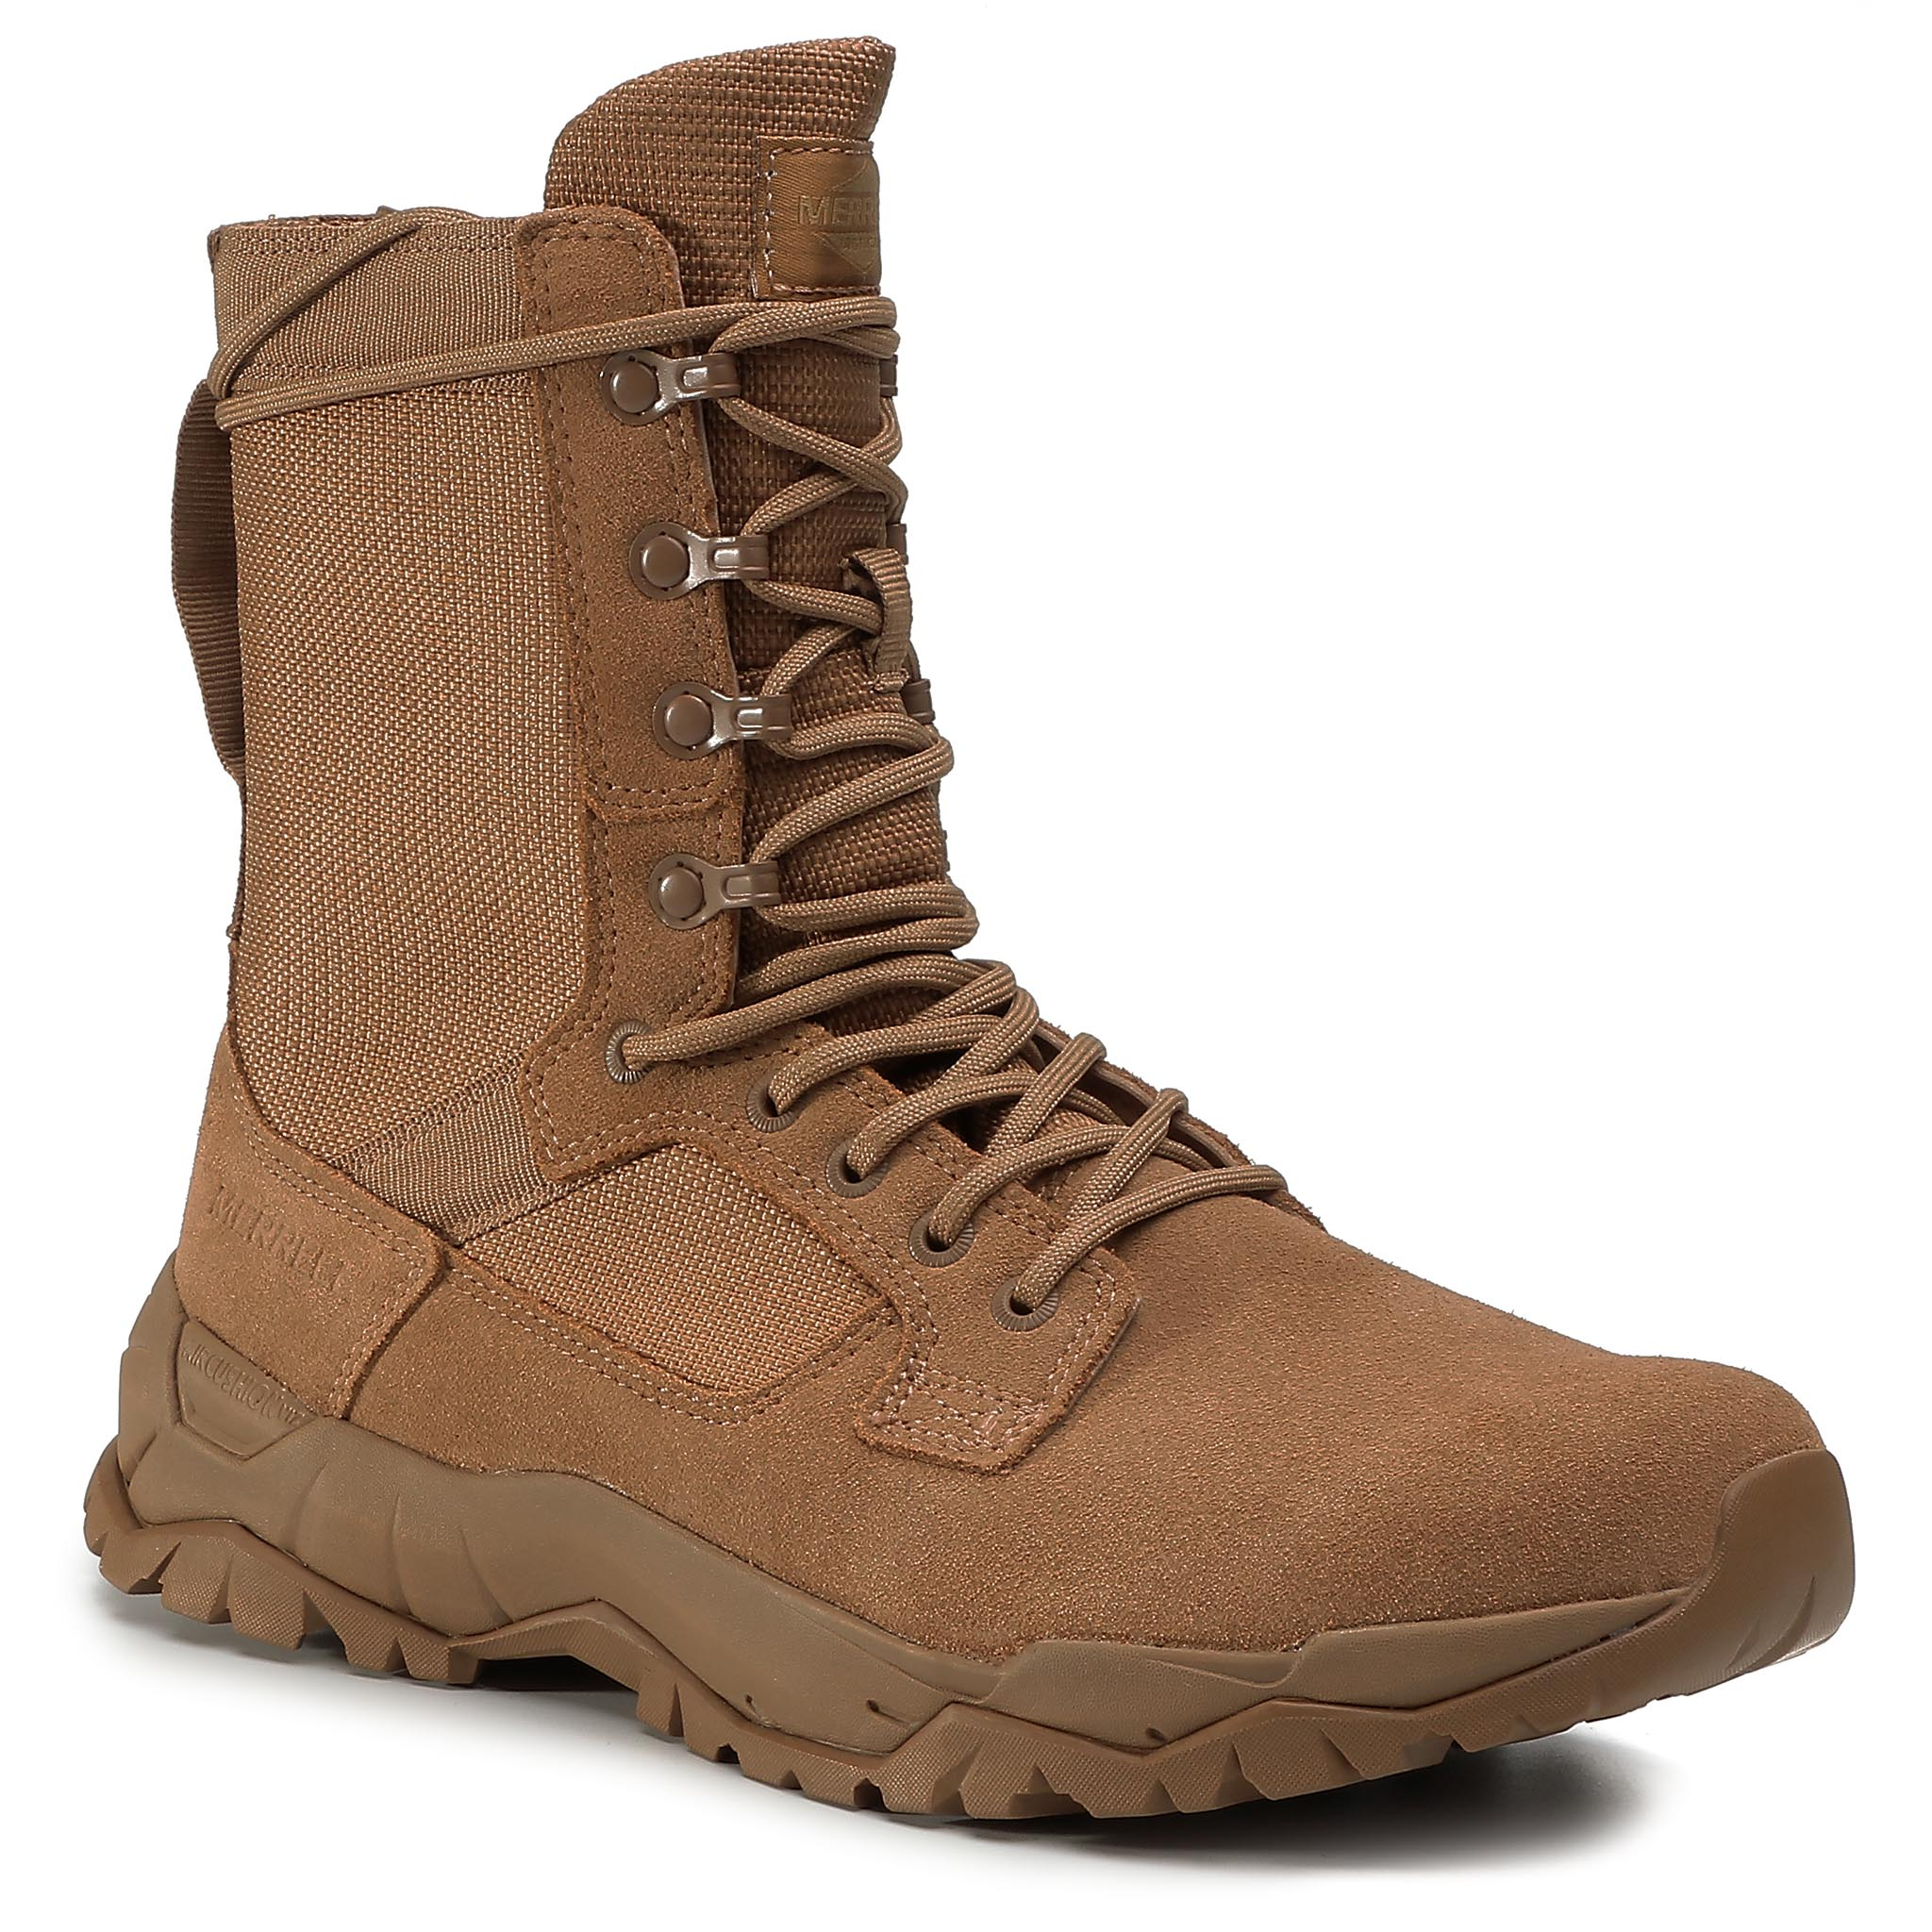 Pantofi Merrell - Mqc 2 Tactical J099375 Coyote imagine epantofi.ro 2021